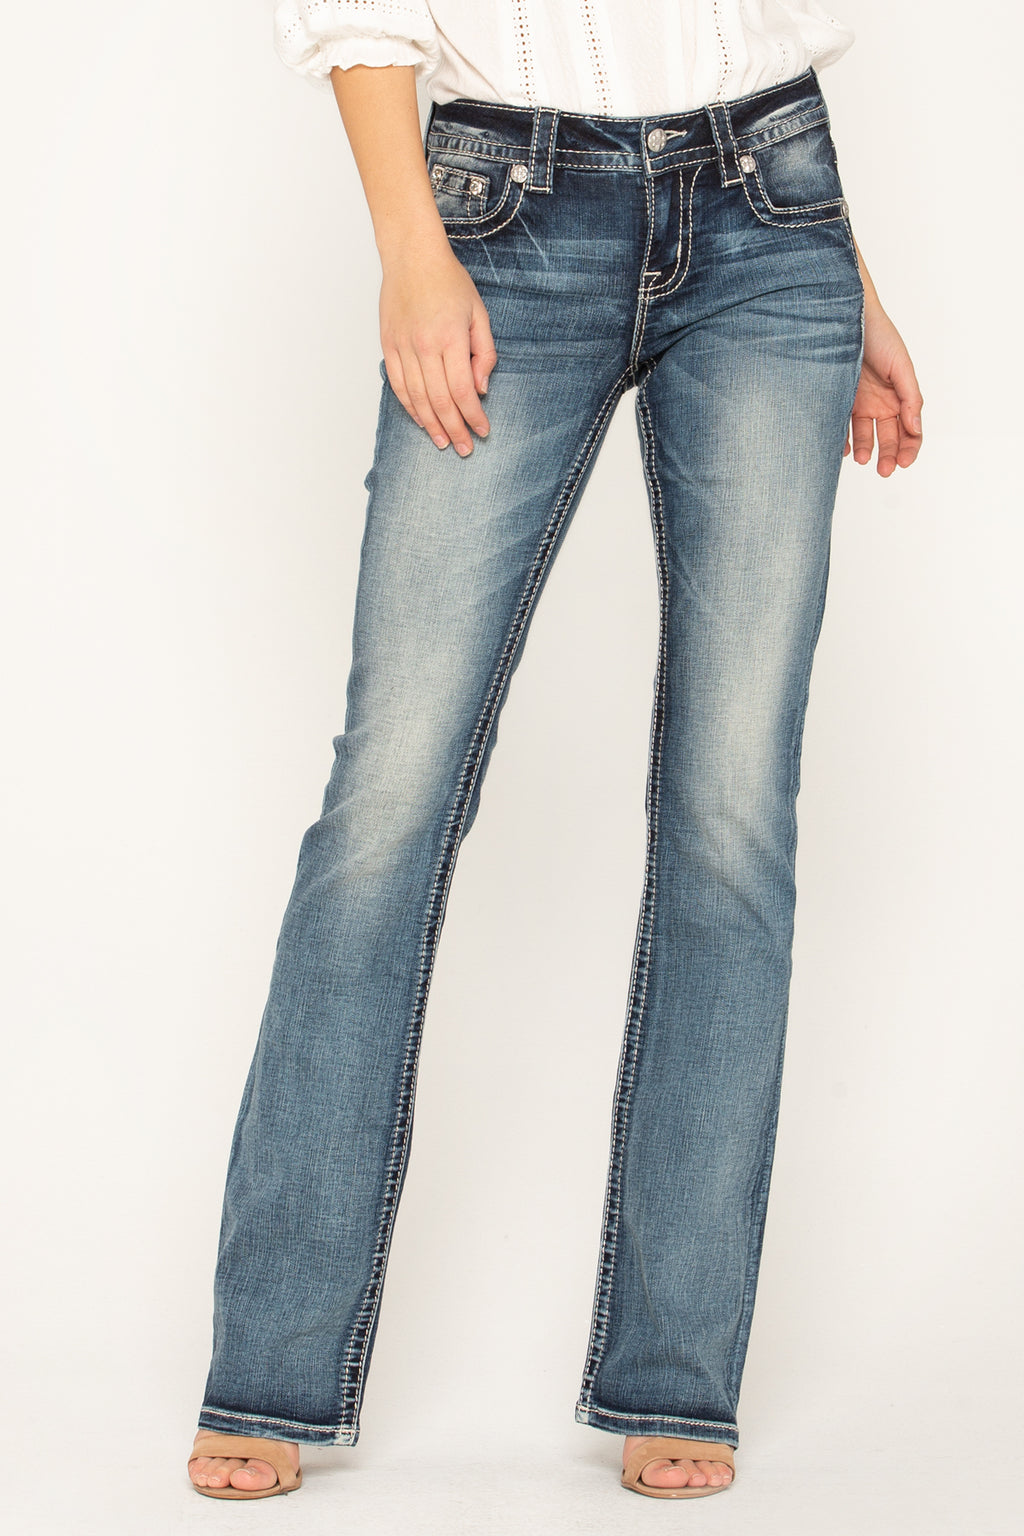 d44bc5aec36 INFINITE LOVE BOOTCUT JEANS - front